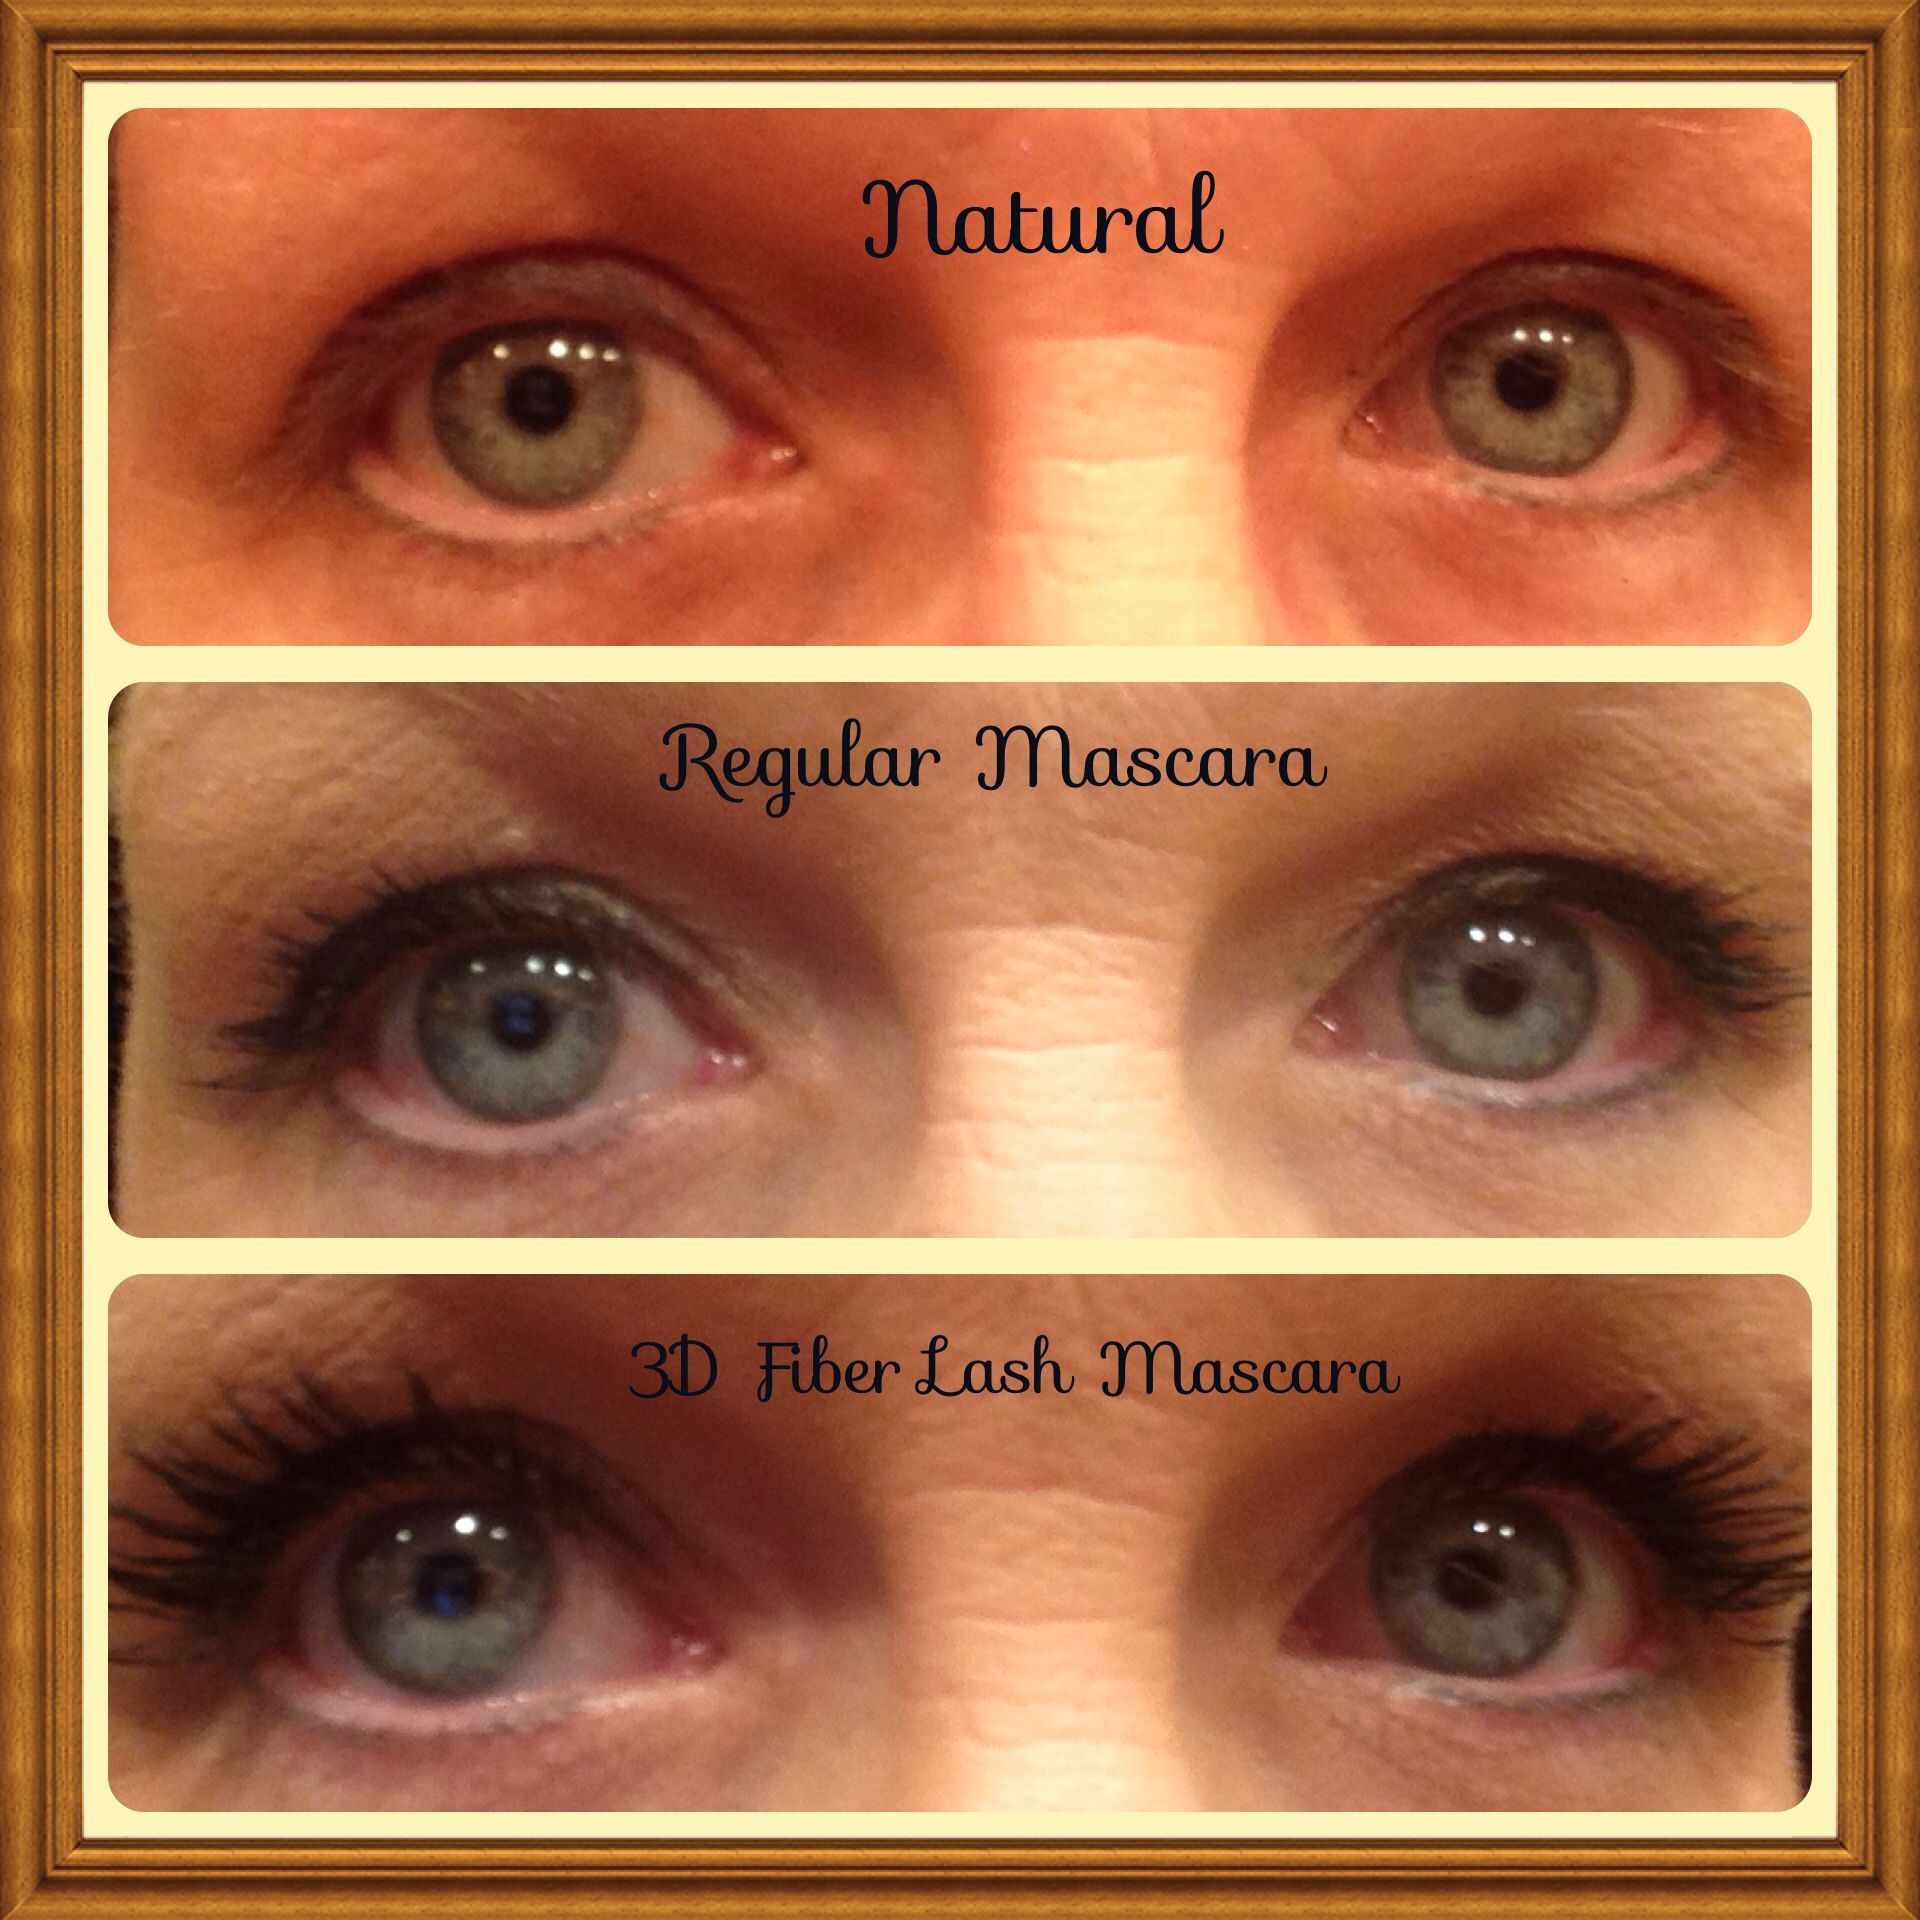 Purchase your 3D Fiber Mascara today at www.youniqueproducts.com/LindseyDickerson